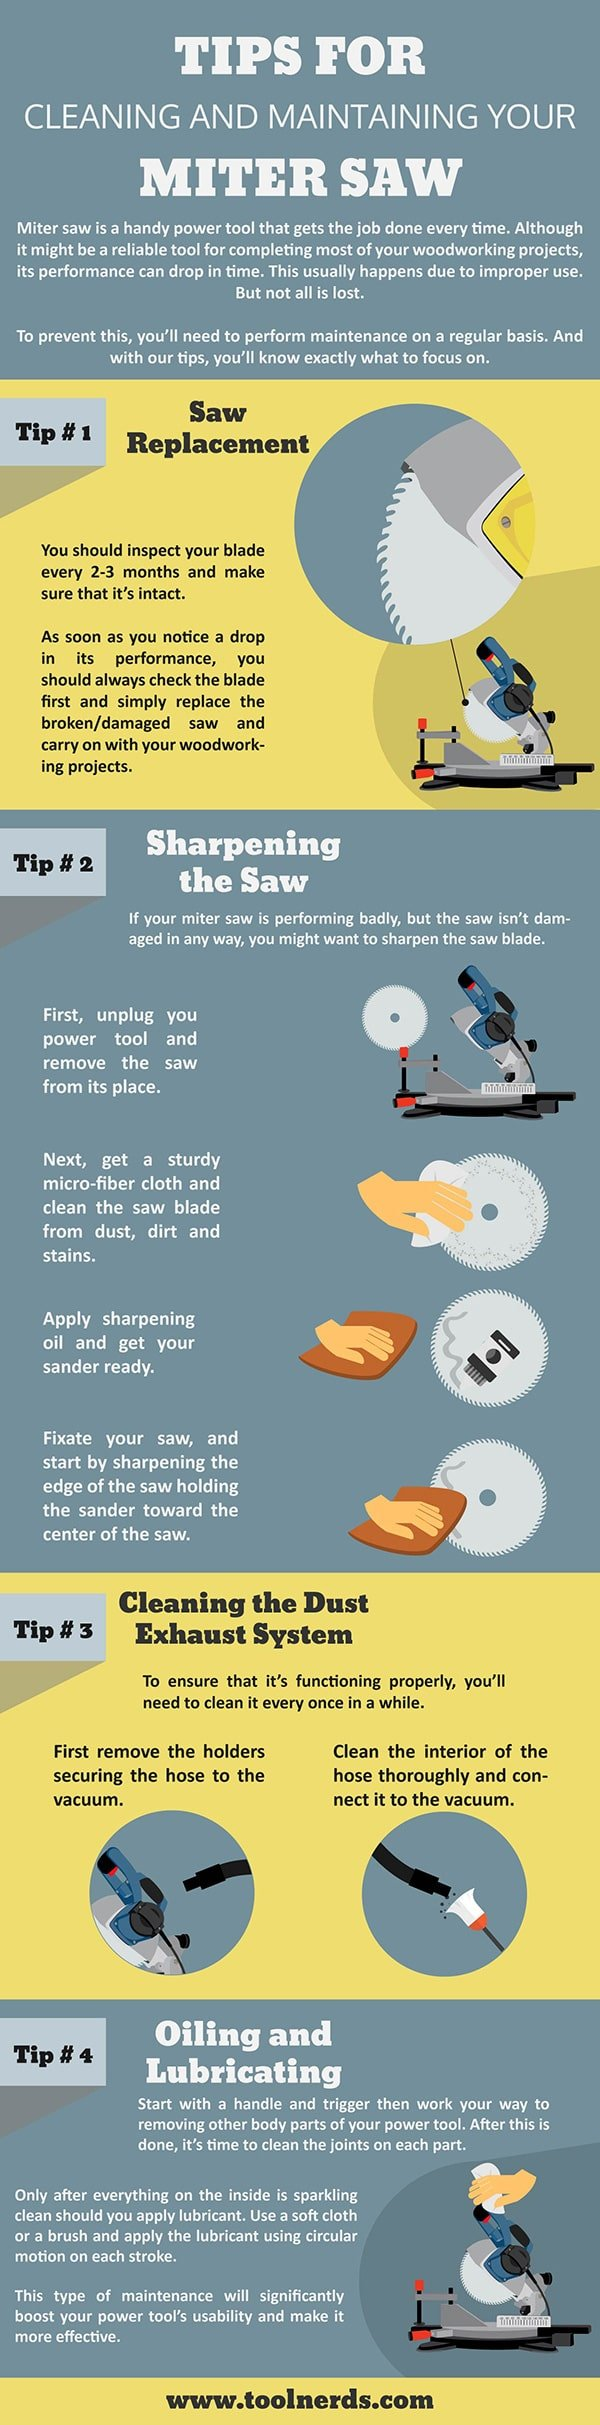 Tips for Cleaning and Maintaining Your Miter Saw